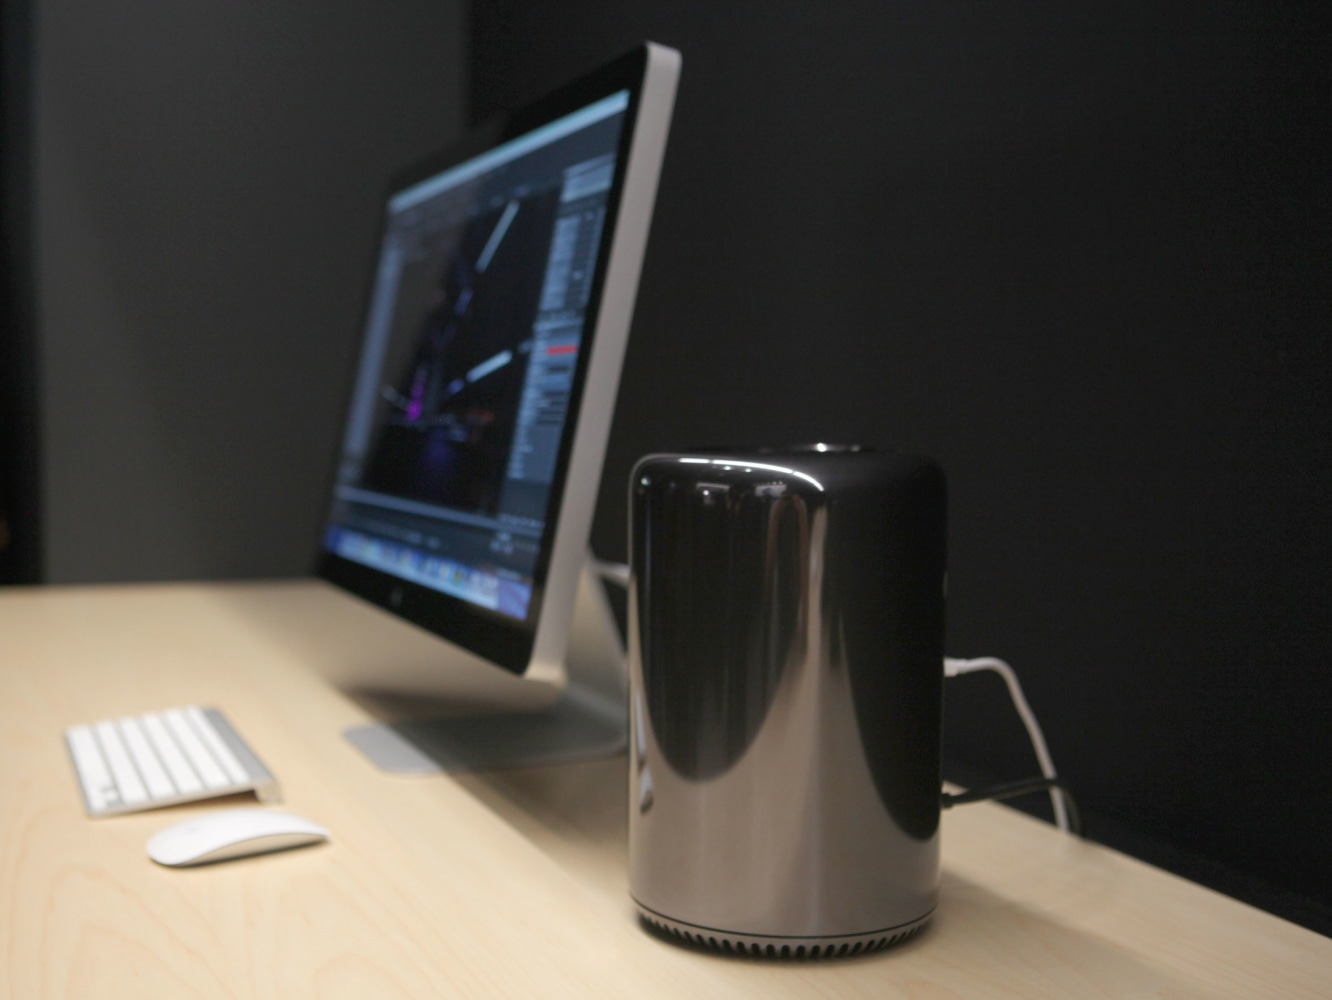 Macbook Pros Get Refresh As Mac Pro Makes Official Debut